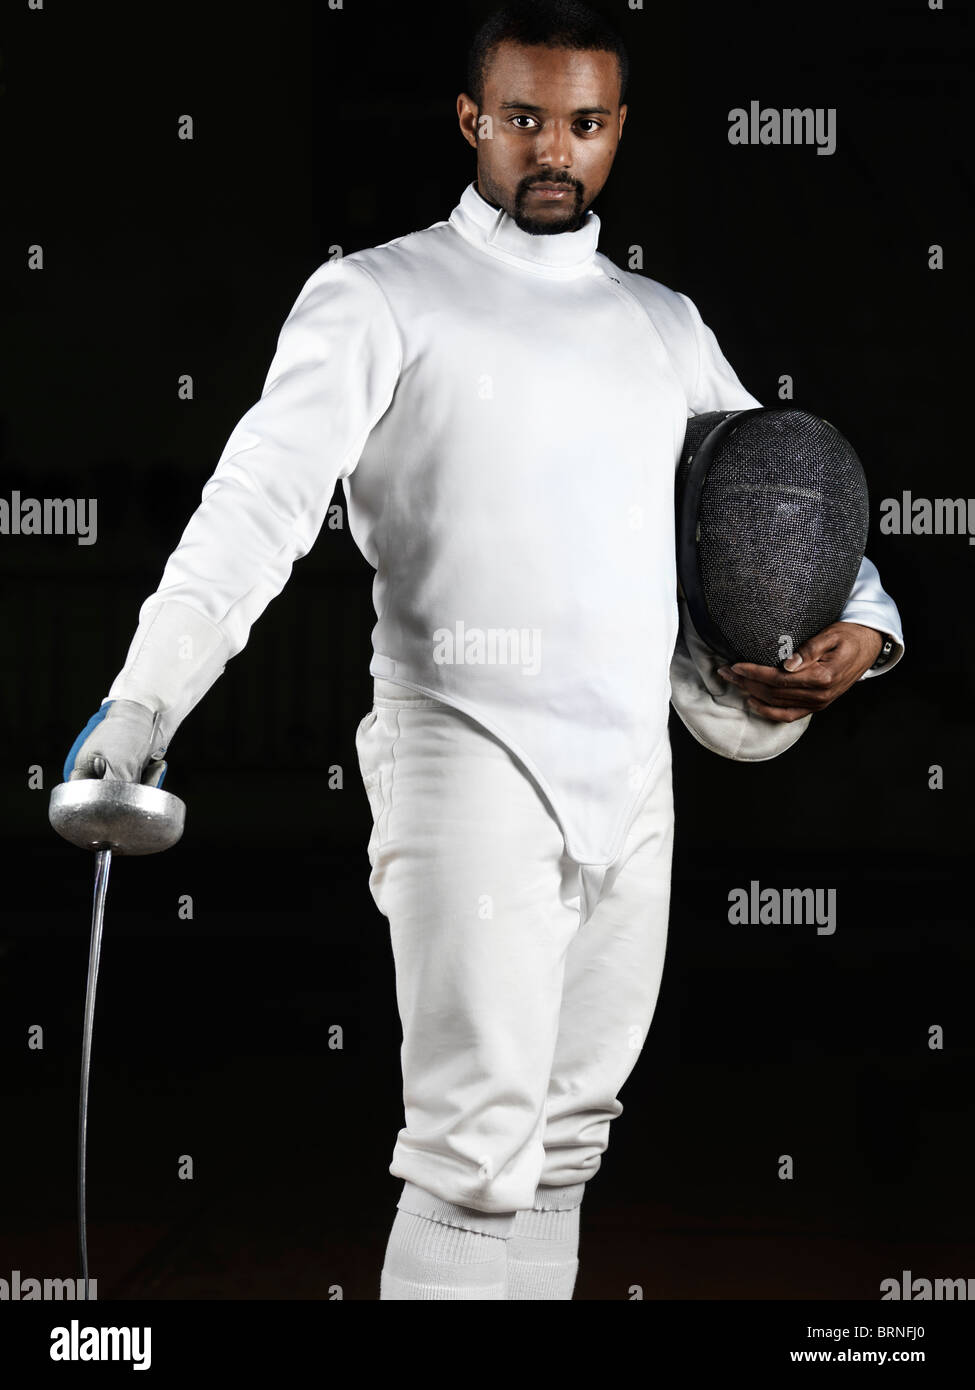 Portrait of a fencer wearing fencing uniform and holding an epee and a mask isolated on black background Stock Photo